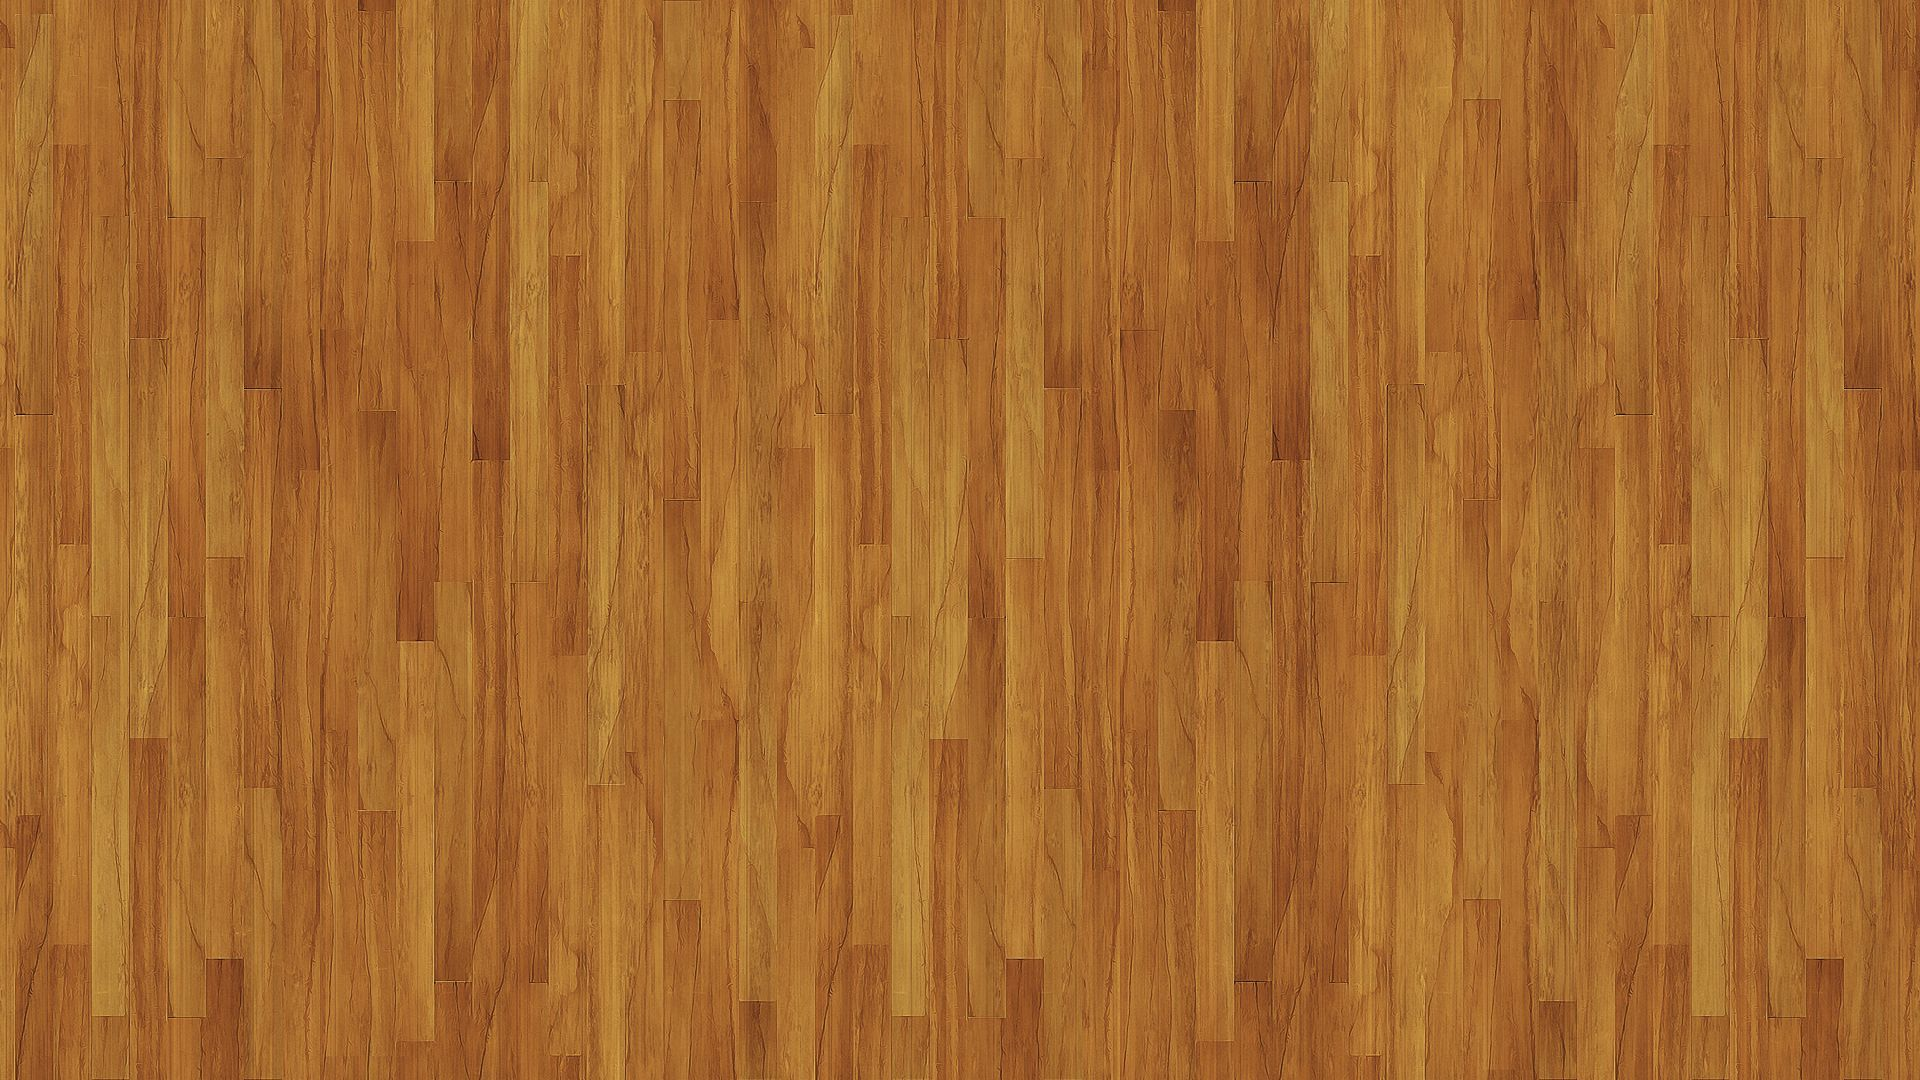 Wood floor wallpaper wallpapersafari for Floating hardwood floor